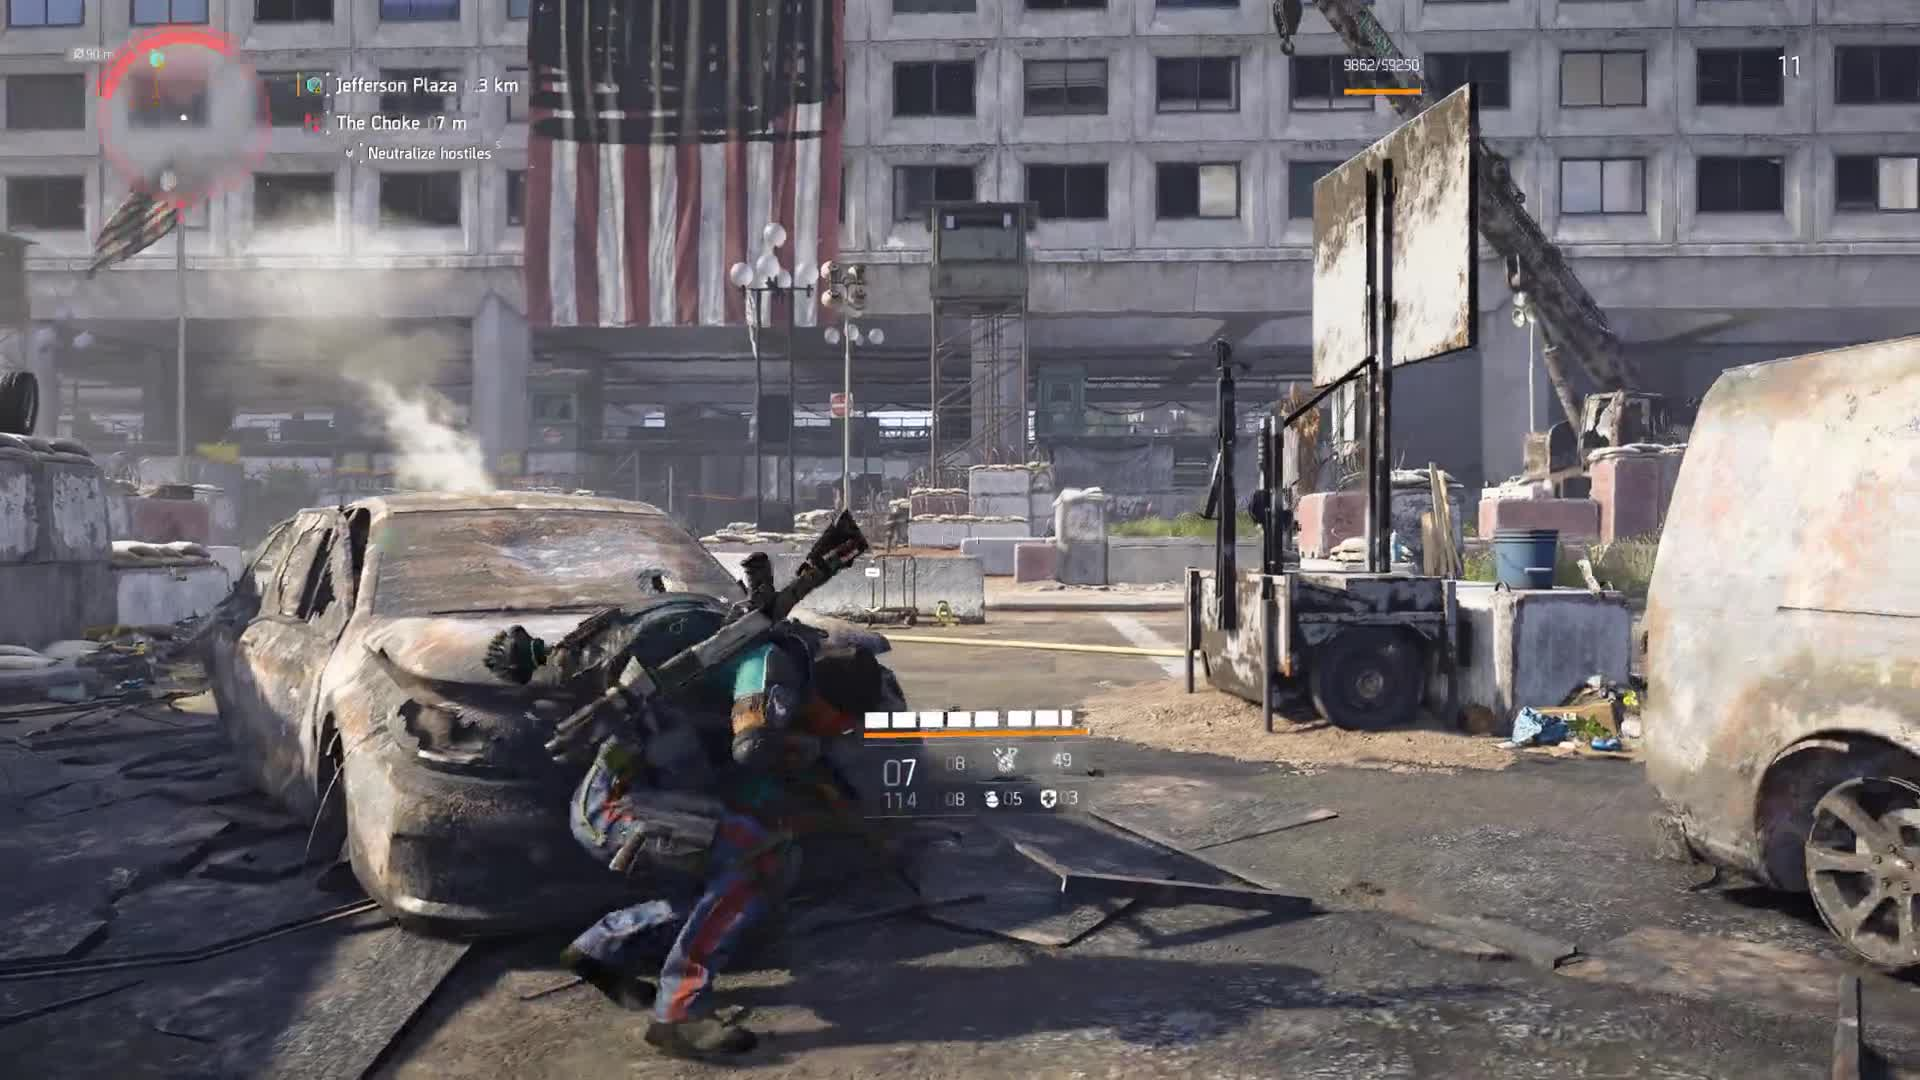 DJXyanyde, division 2, division2, loot, snipe, the division 2, tom clancy, [Division 2] Hunting Rifle Snipe GIFs